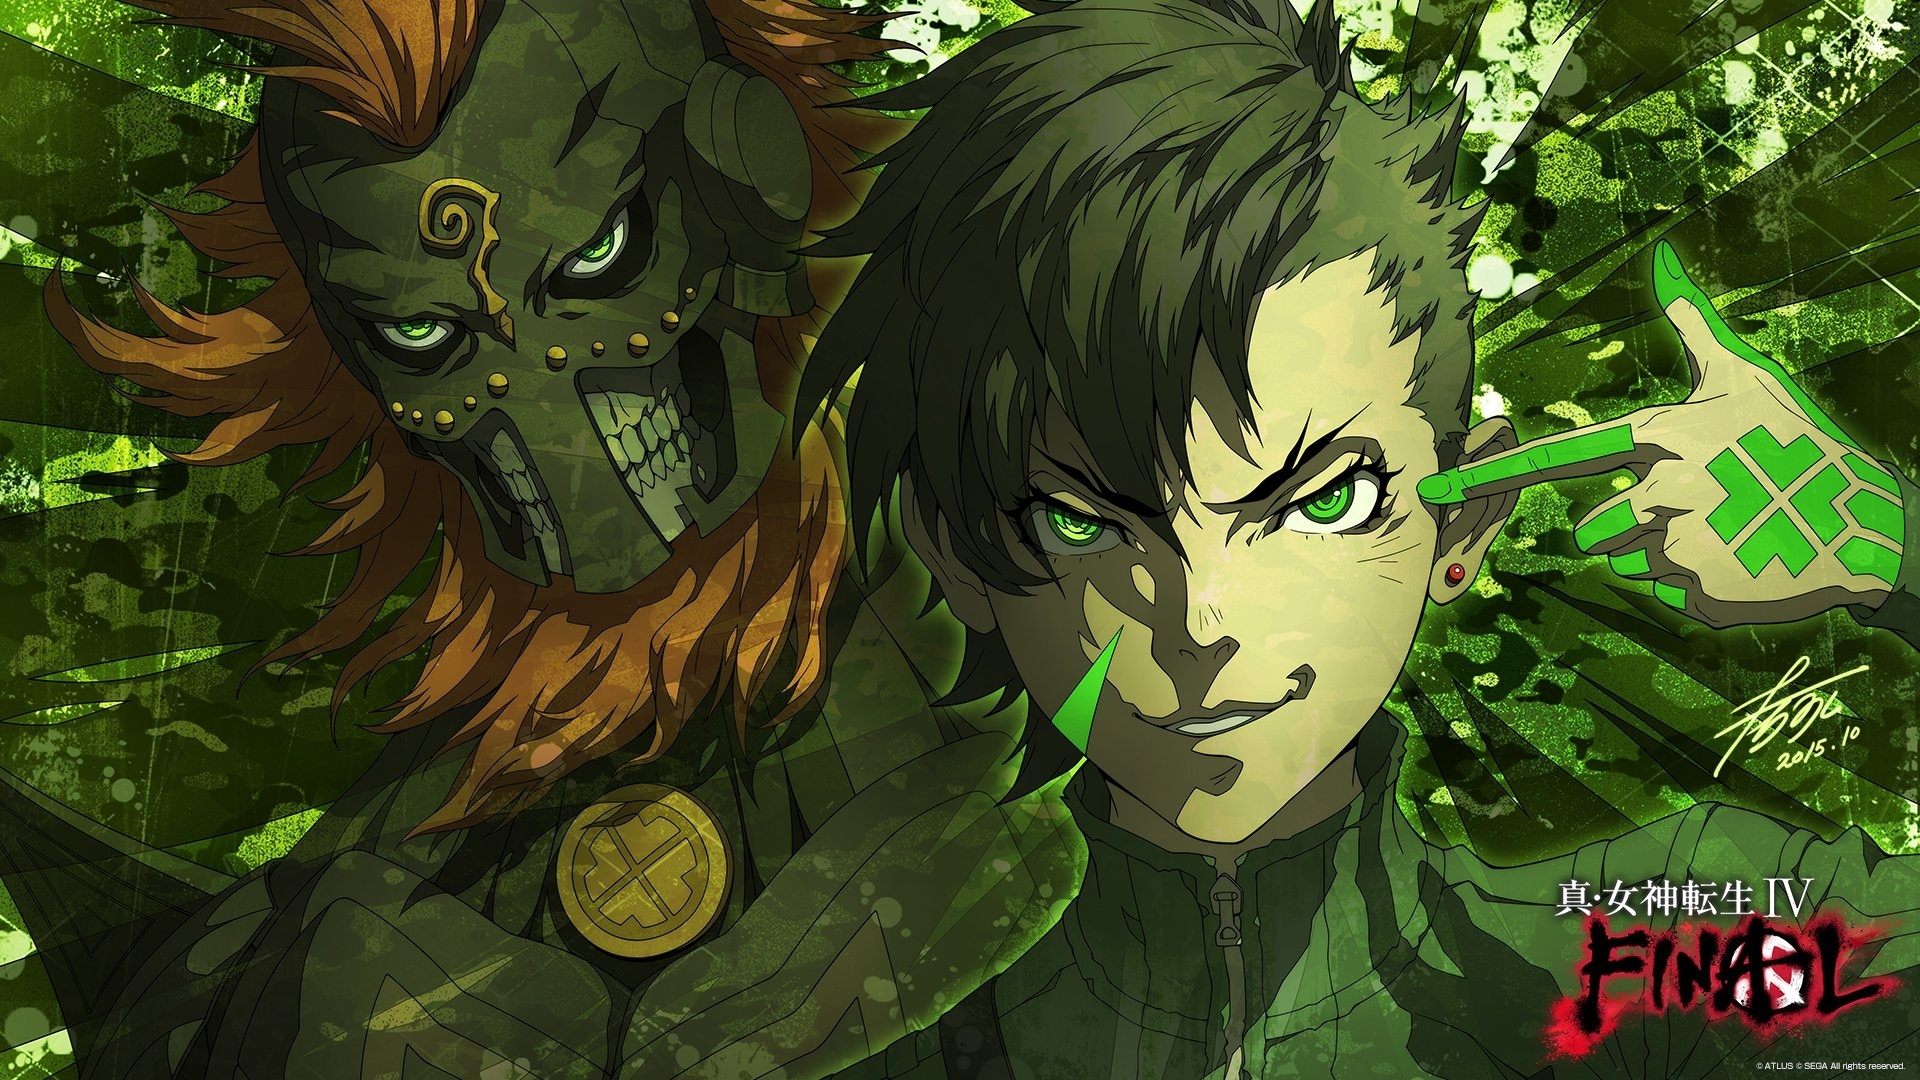 15 shin megami tensei hd wallpapers | background images - wallpaper